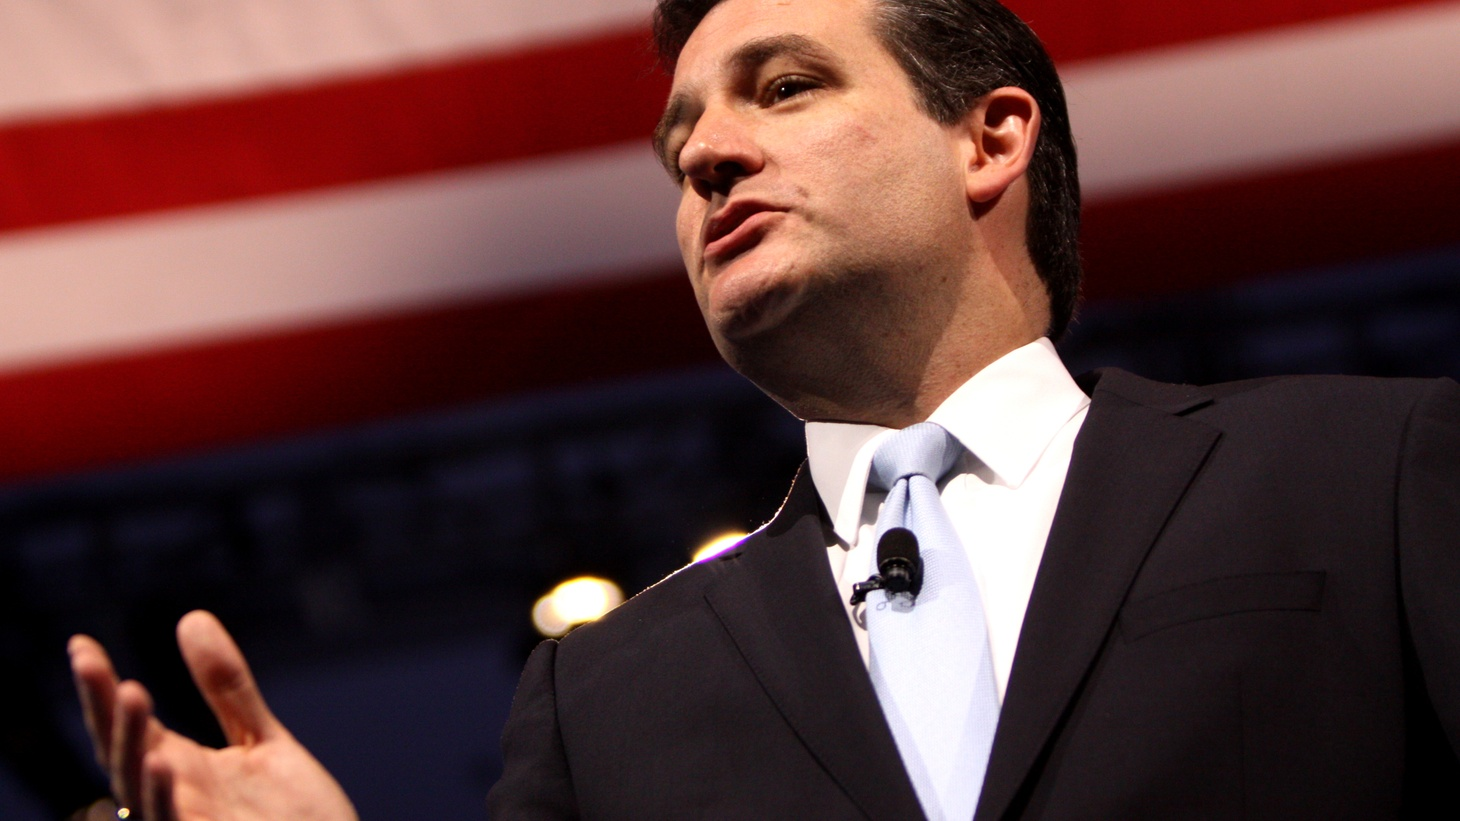 We start with a look at Texas Senator Ted Cruz's bid for the 2016 Republican presidential nomination. Also, in our weekly television roundup, was the season finale of Empire a fan favorite or drama overkill?